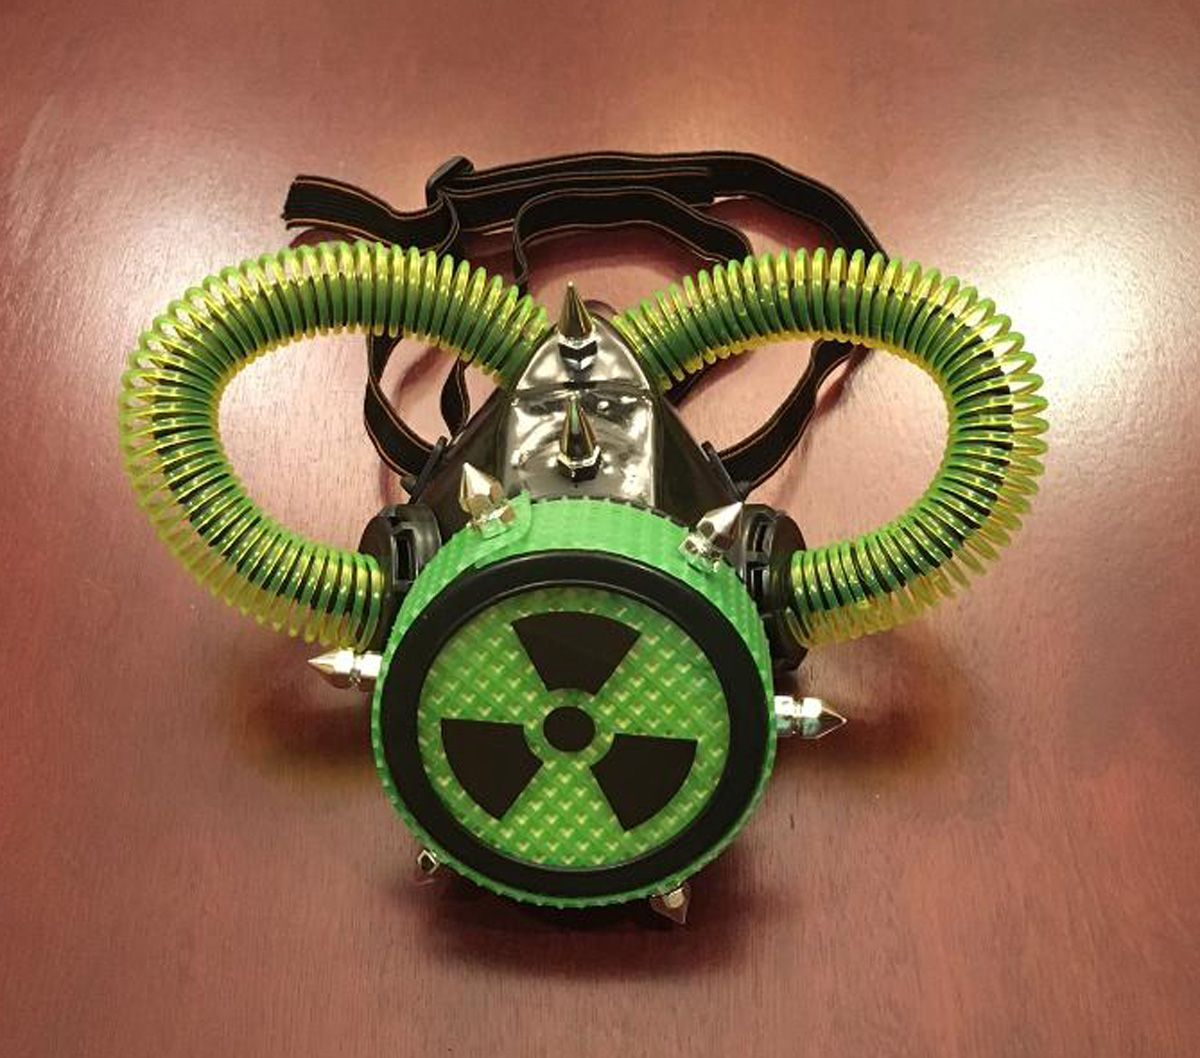 Bio Hazard Green Gas Mask